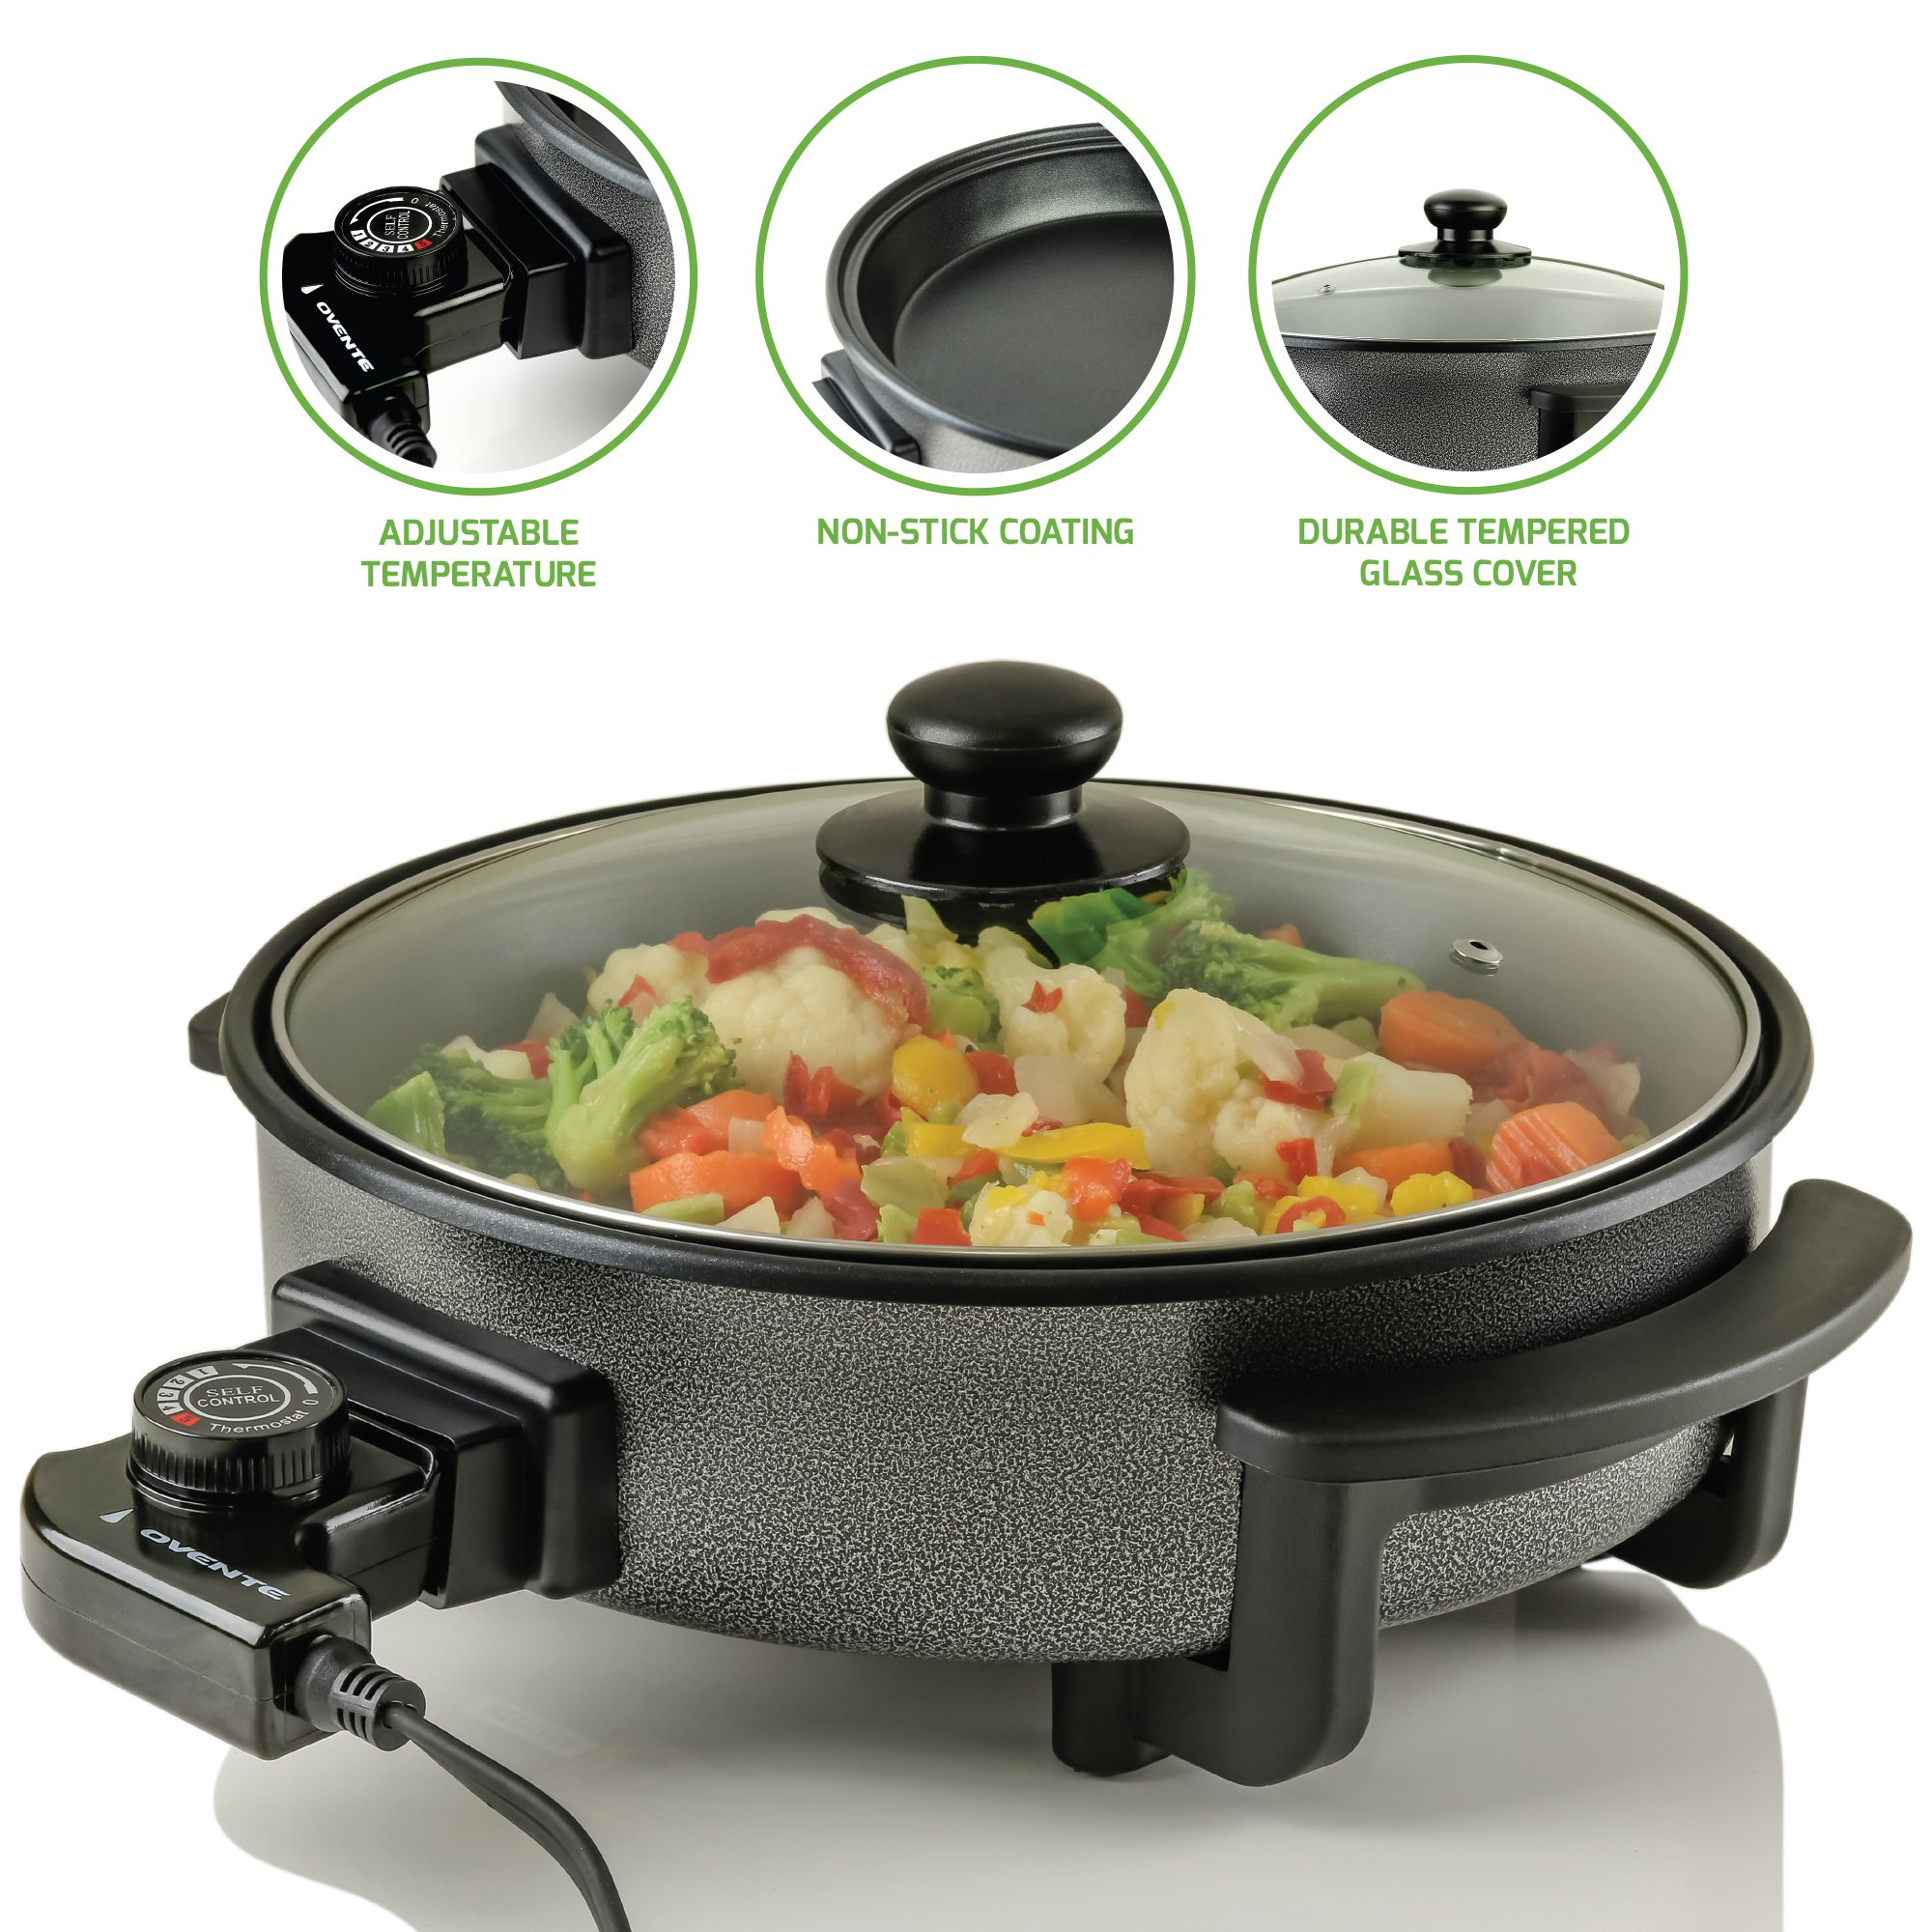 Ovente SK11112B Electric Skillet with Non-Stick Aluminum Body, 12 Inch, 1400-Watts, Temperature Controller, Tempered Glass Cover, Cool-Touch Handles, Black